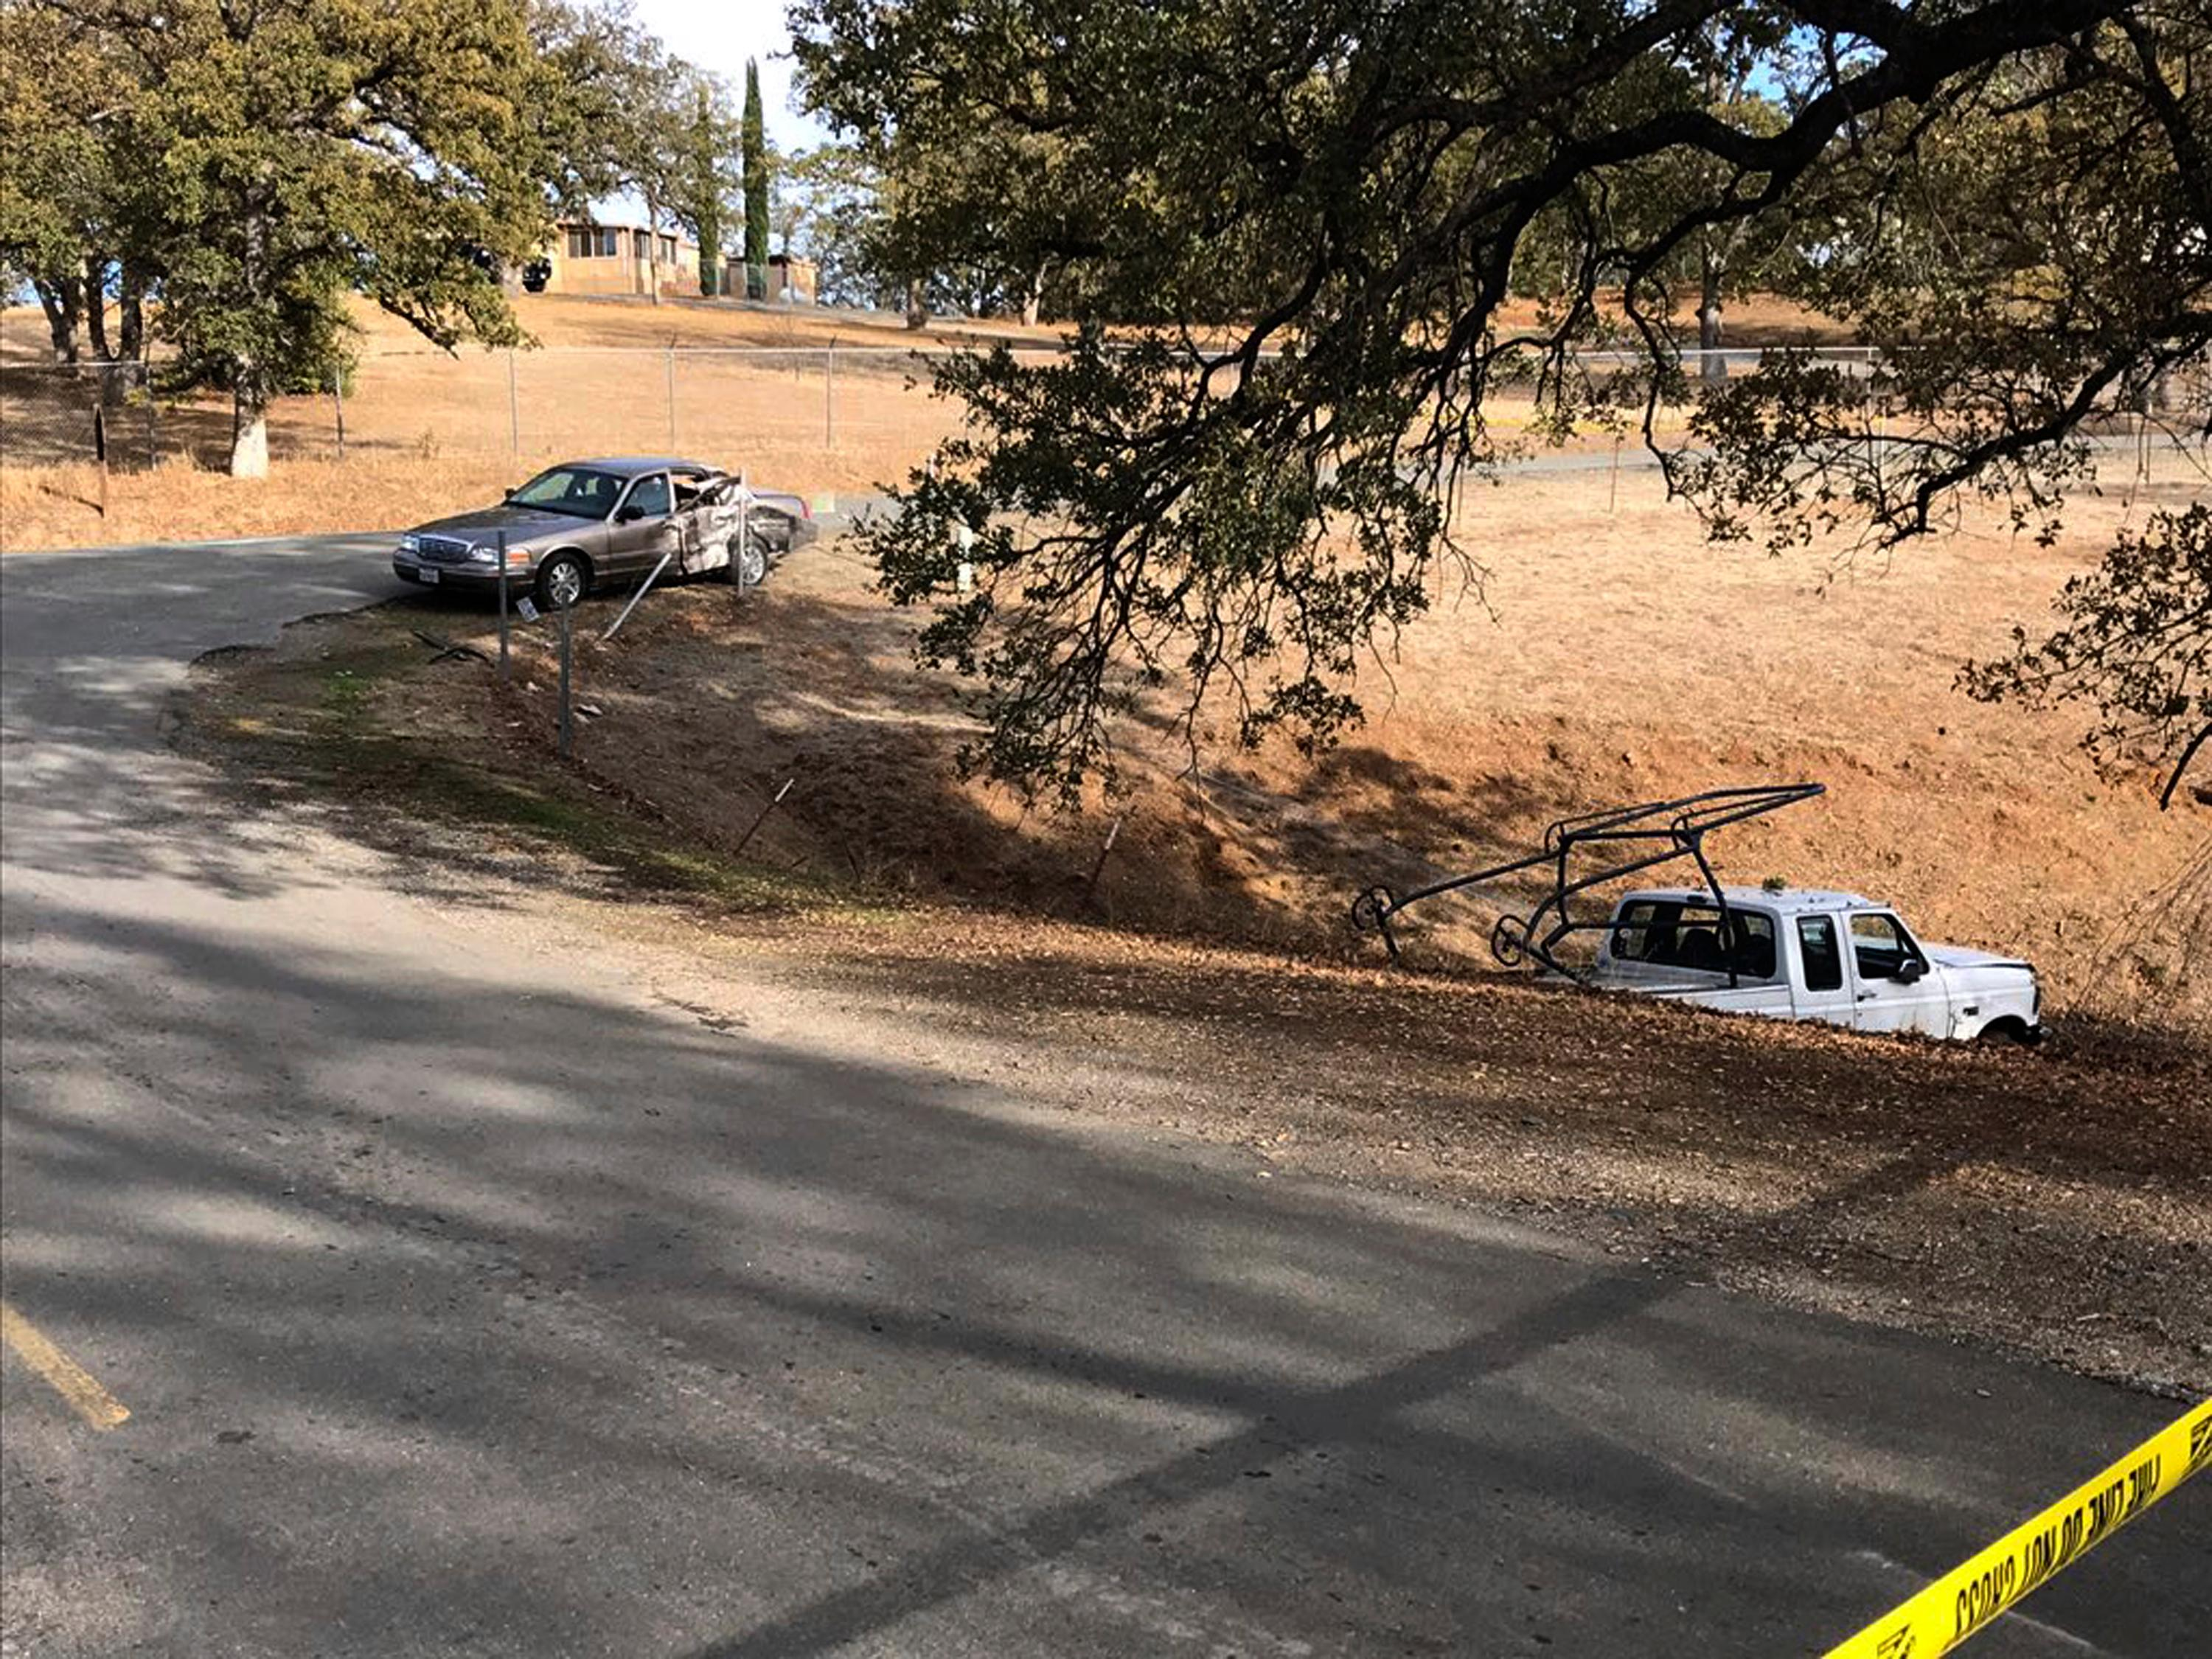 This is one of seven crime scenes in the mass shooting in Rancho Tehama near Red Bluff, California, on Tuesday, Nov. 14, 2017. Tehama County Assistant Sheriff Phil Johnston says investigators are trying to determine a motive in the shootings Tuesday in the small community of Tehama Ranch Reserve.  (Jim Schultz/The Record Searchlight via AP)